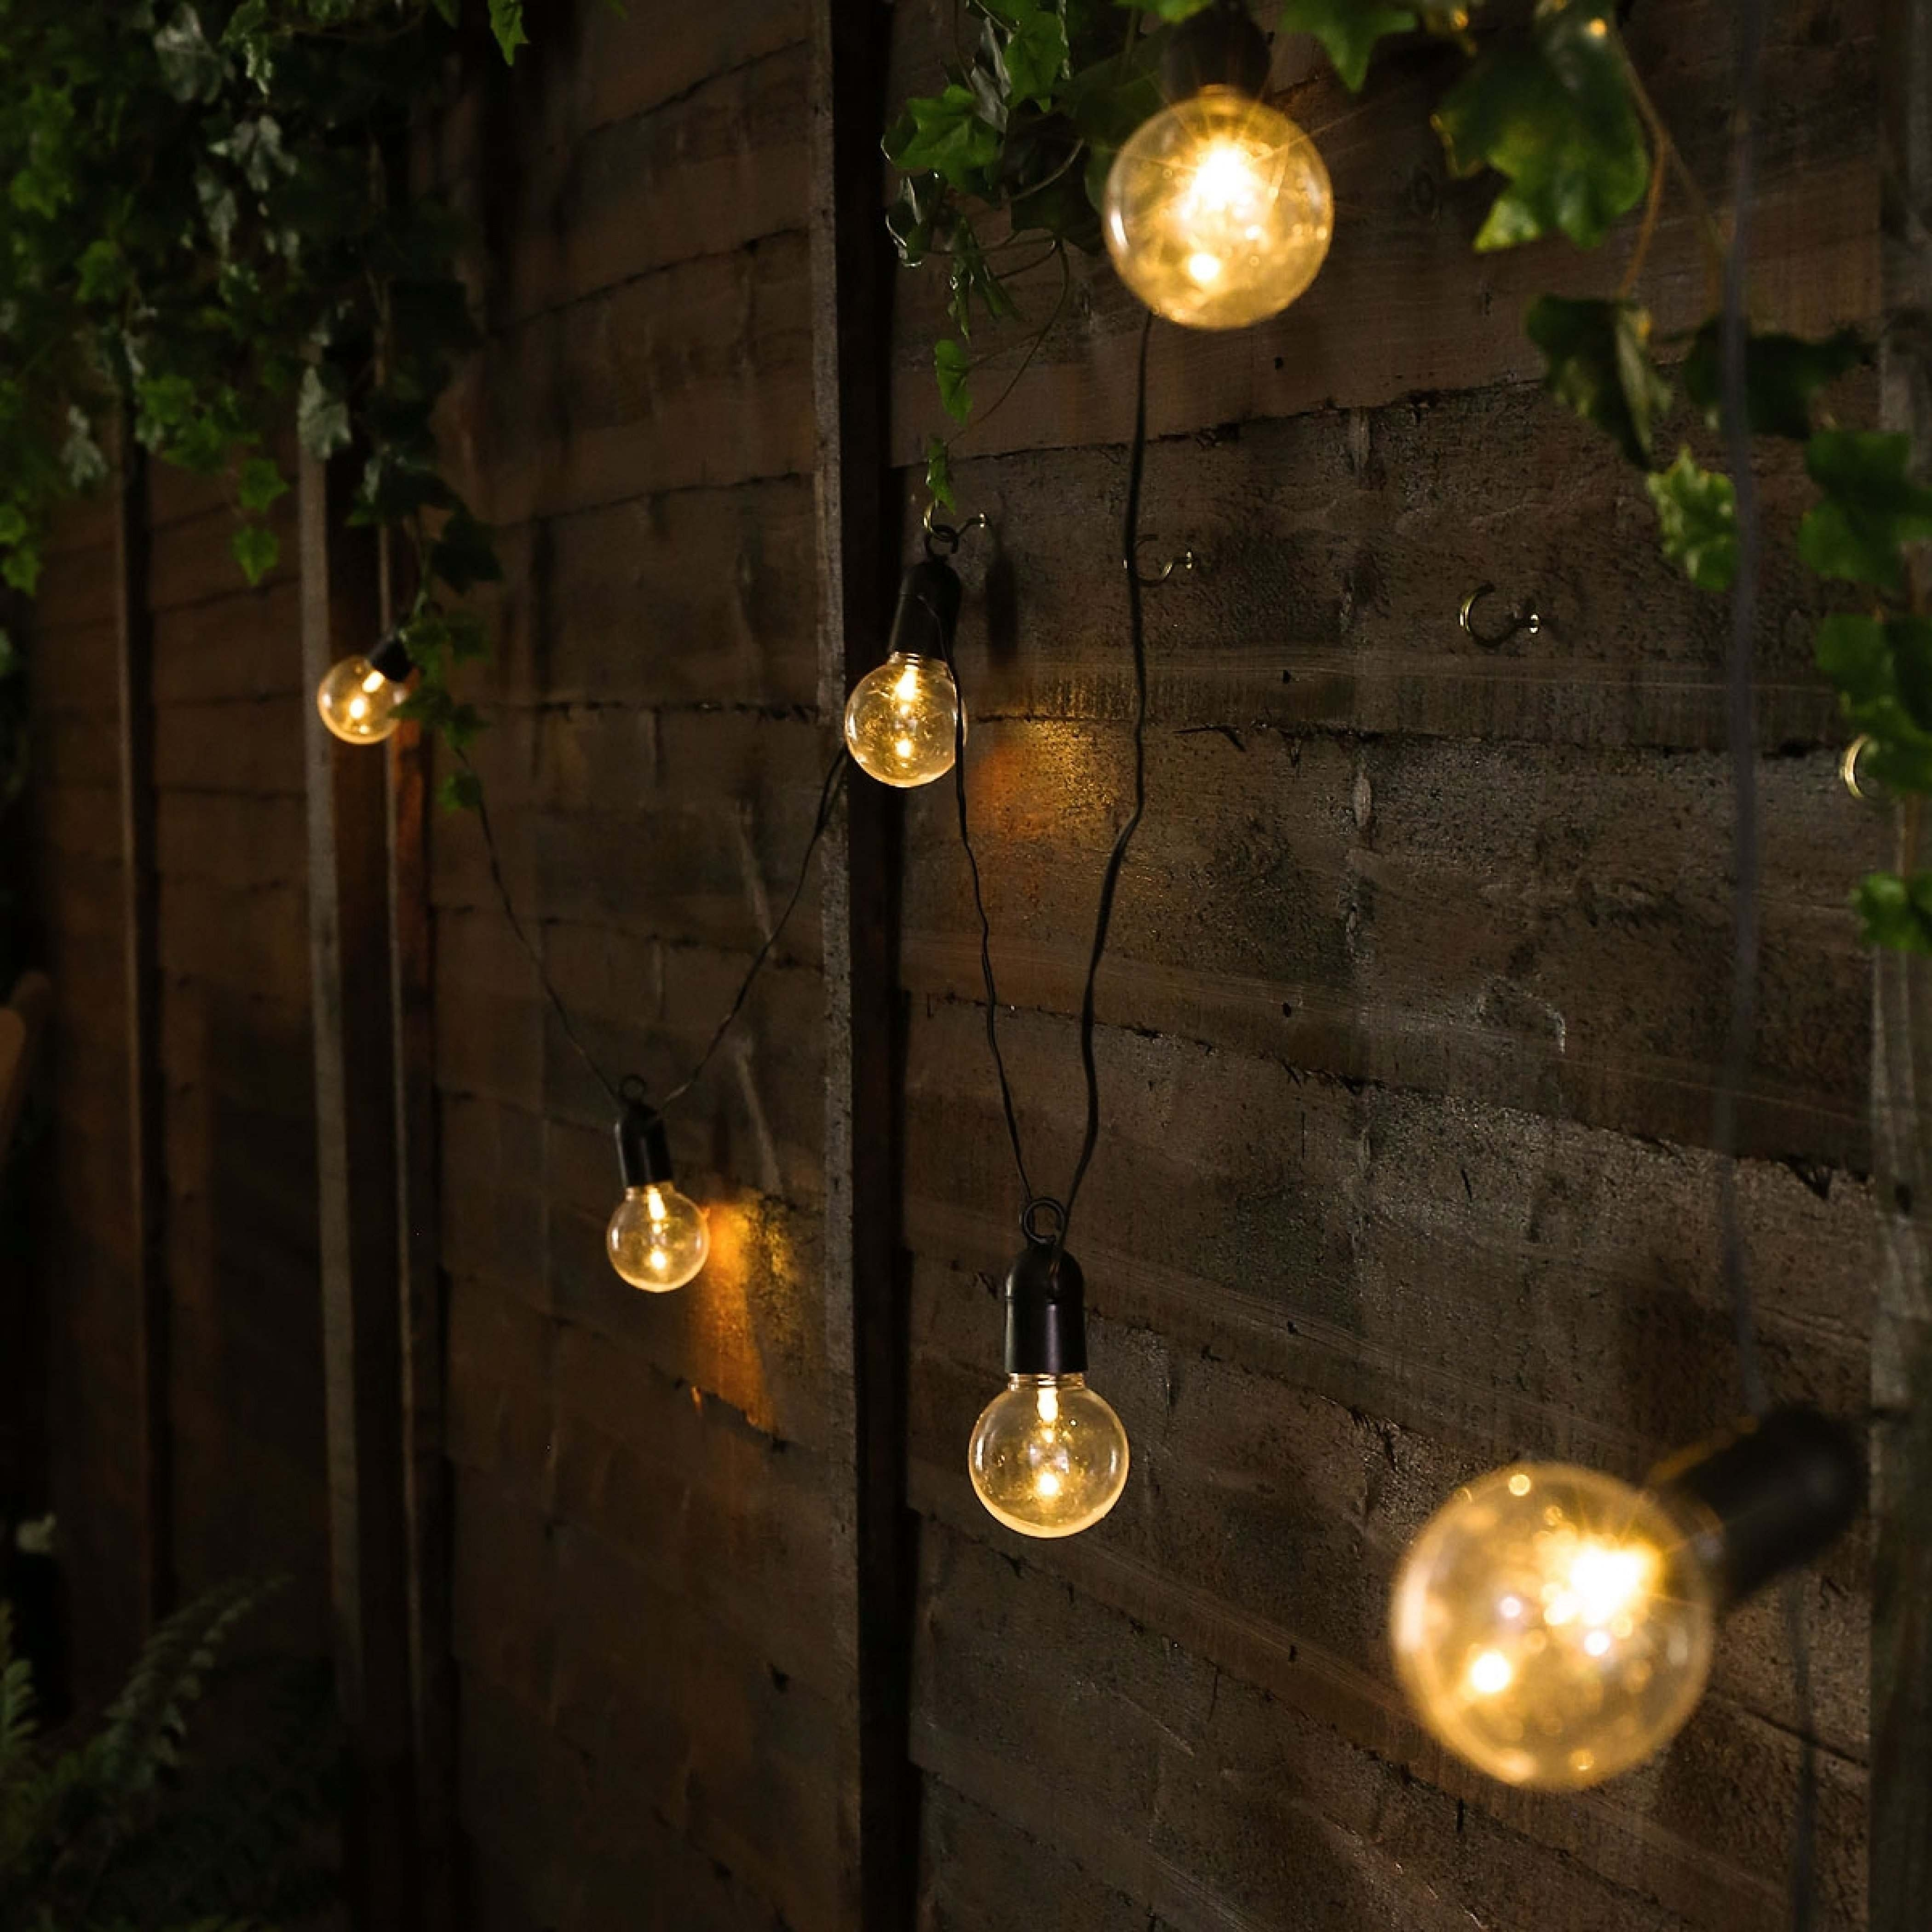 Sparkling Focus Cordless Outdoor Lamps Battery Powered Light Designs with Outdoor Battery Lanterns for Patio (Image 20 of 20)